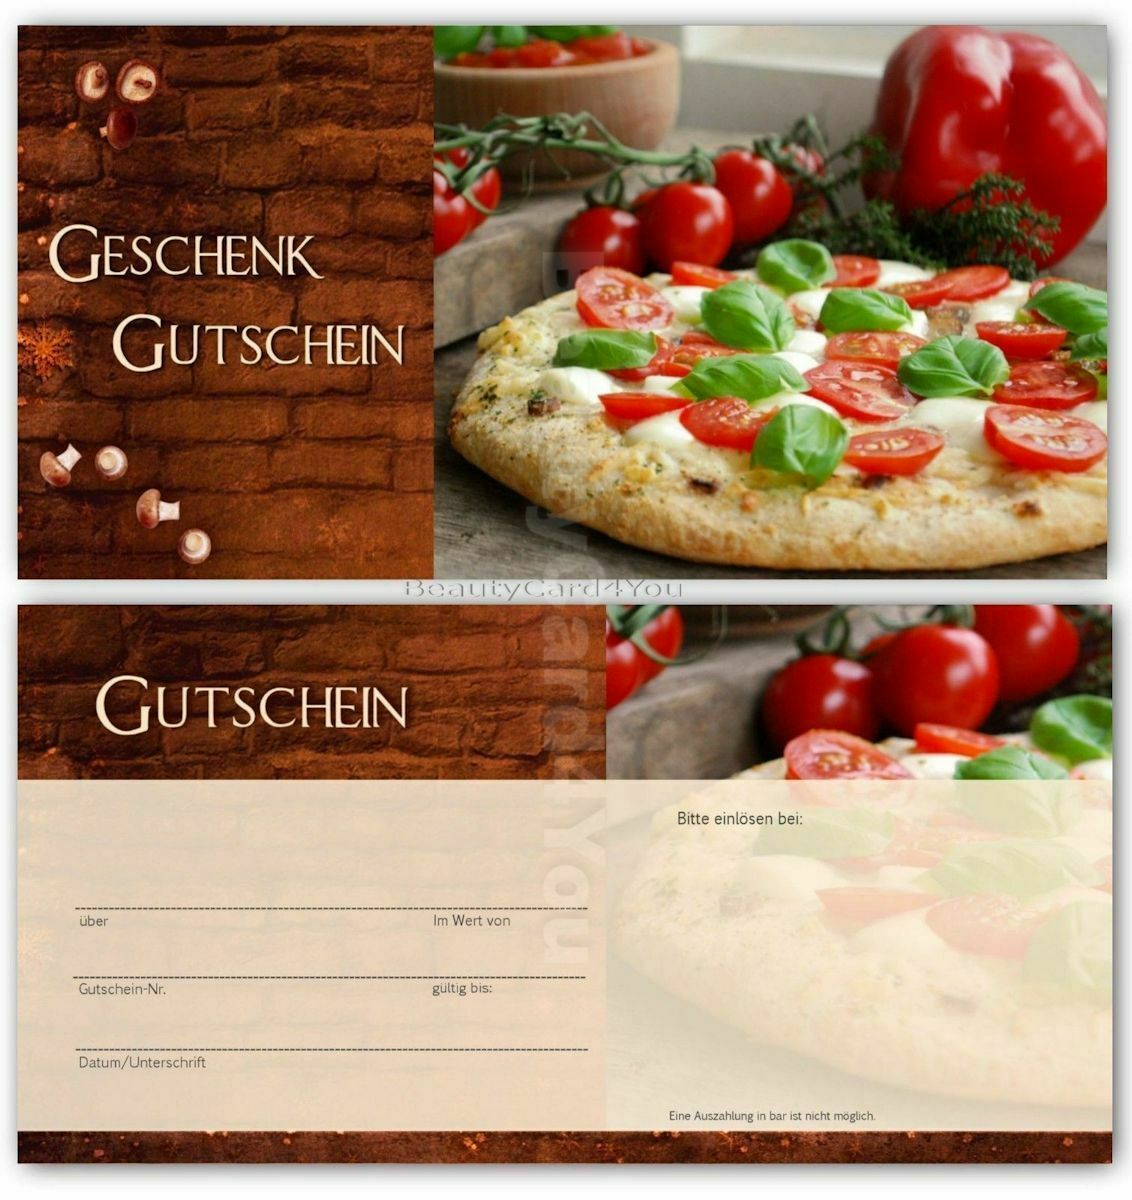 100 st geschenkgutschein gastronomie restaurant essen gastro pizza pizzeria eur 19 90. Black Bedroom Furniture Sets. Home Design Ideas